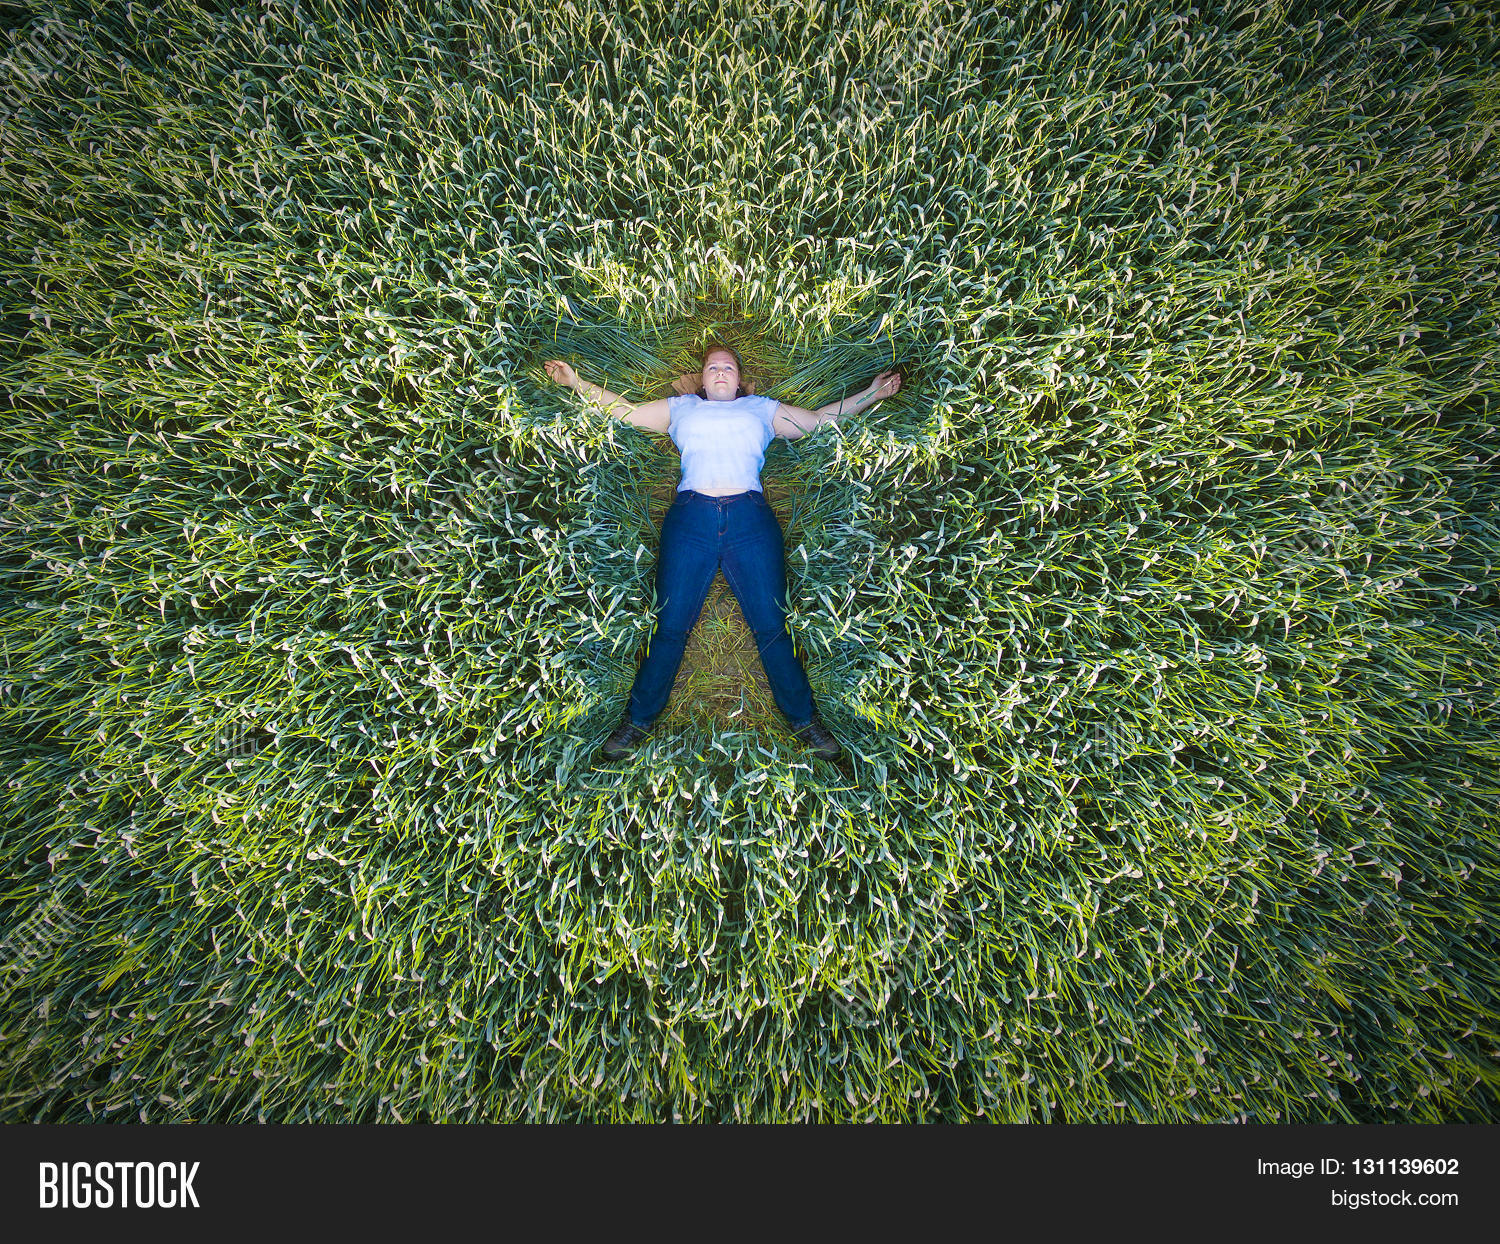 Aerial View Of Young Woman Meditating And Relaxing In Green Wheat Field Healthy Lifestyle Concept